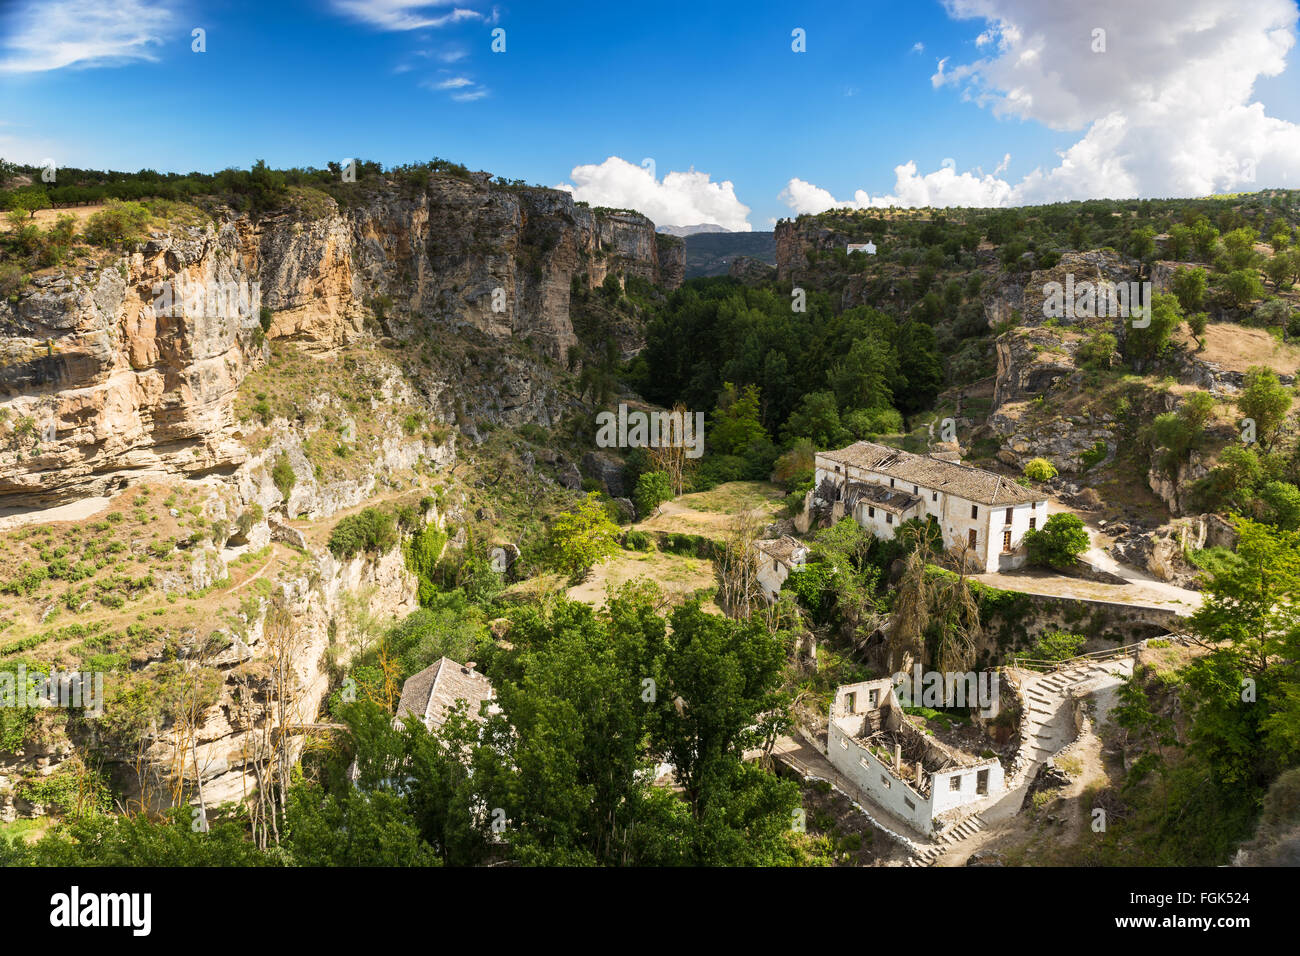 Canyon at Alhama de Granada, Andalusia, Spain Stock Photo